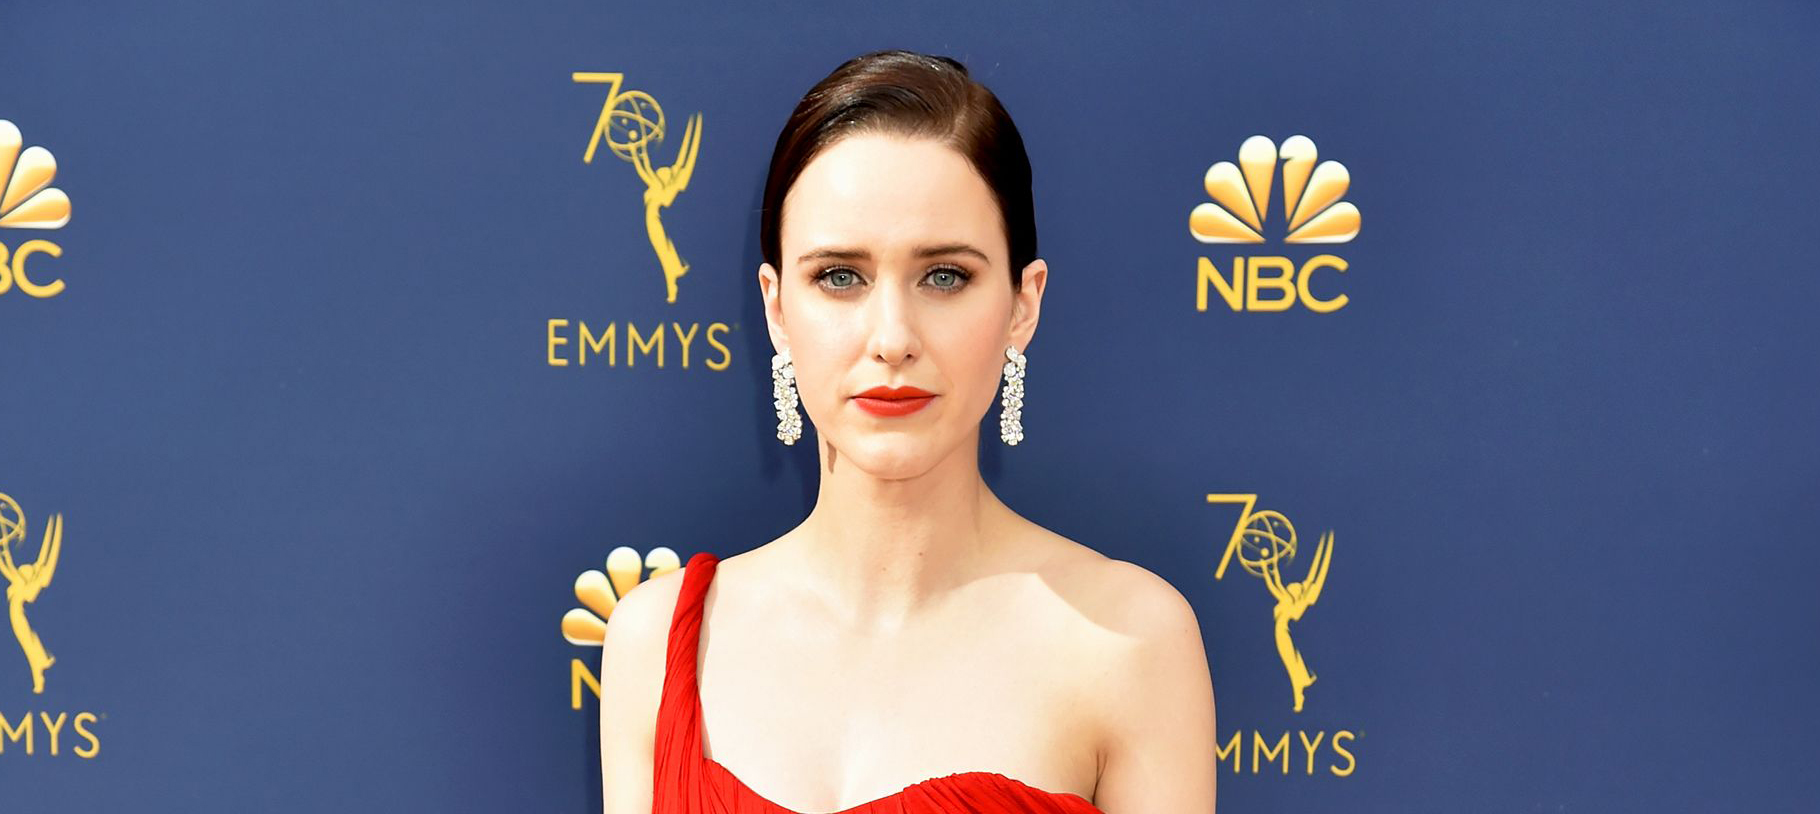 Rachel Brosnahan Biography, Wiki, Age, Weight, Family, Education, Movies, TV Shows & Net Worth